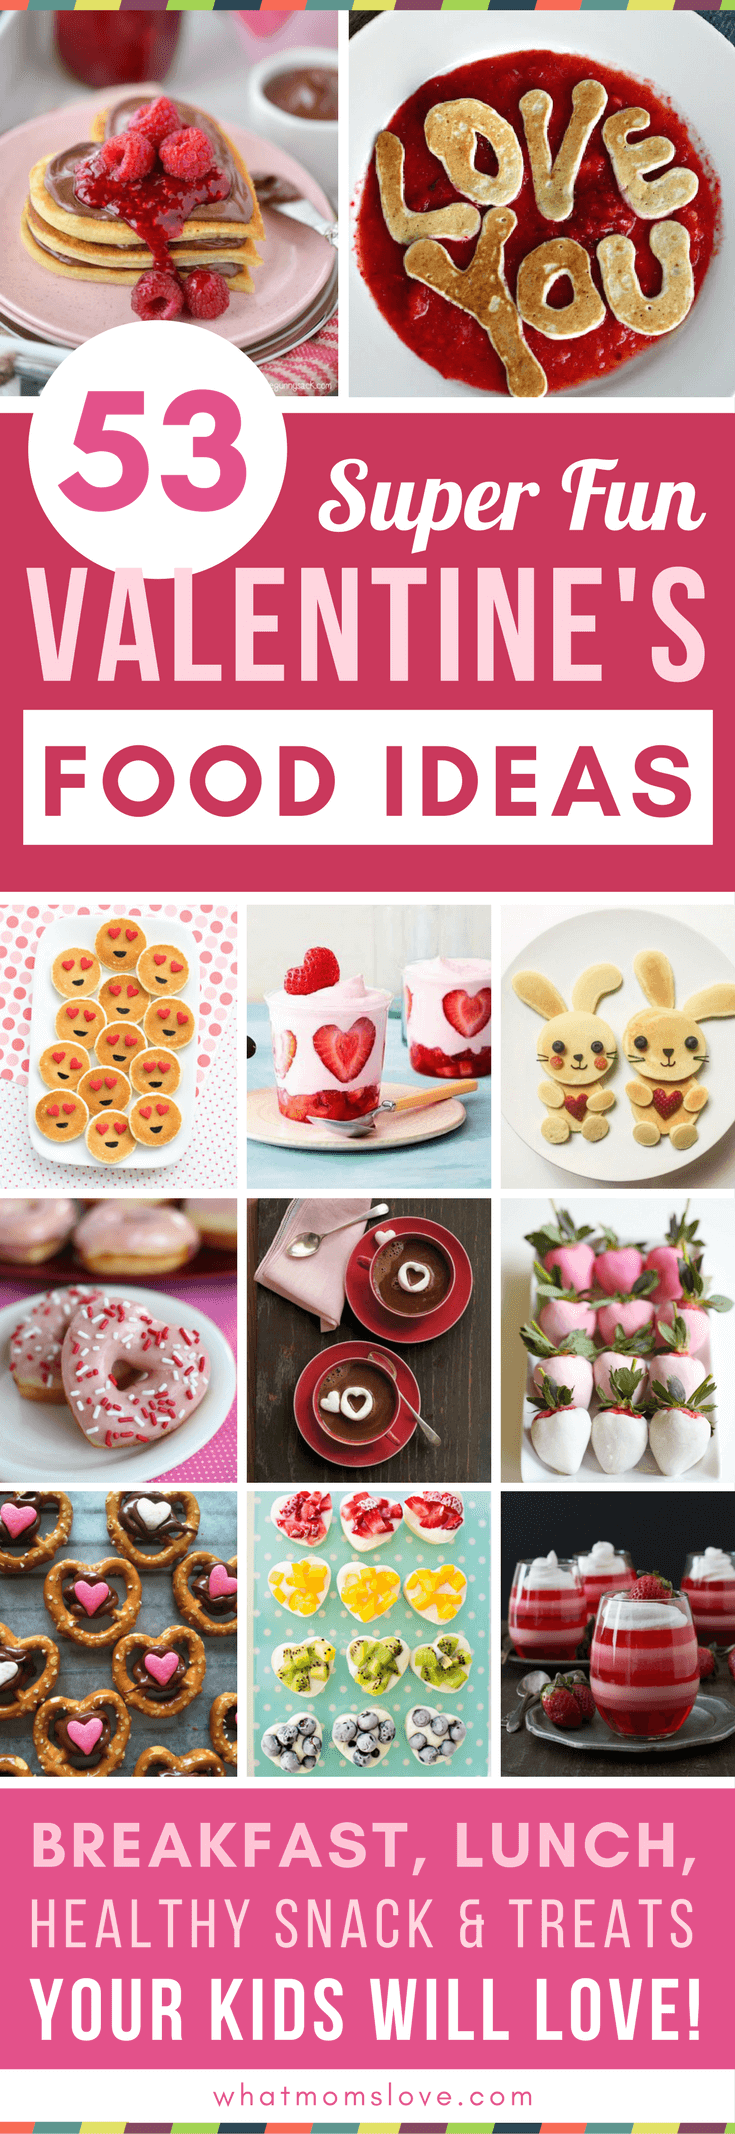 50 Valentine S Day Food Ideas For Kids Fun Recipes For Breakfast And Beyond What Moms Love